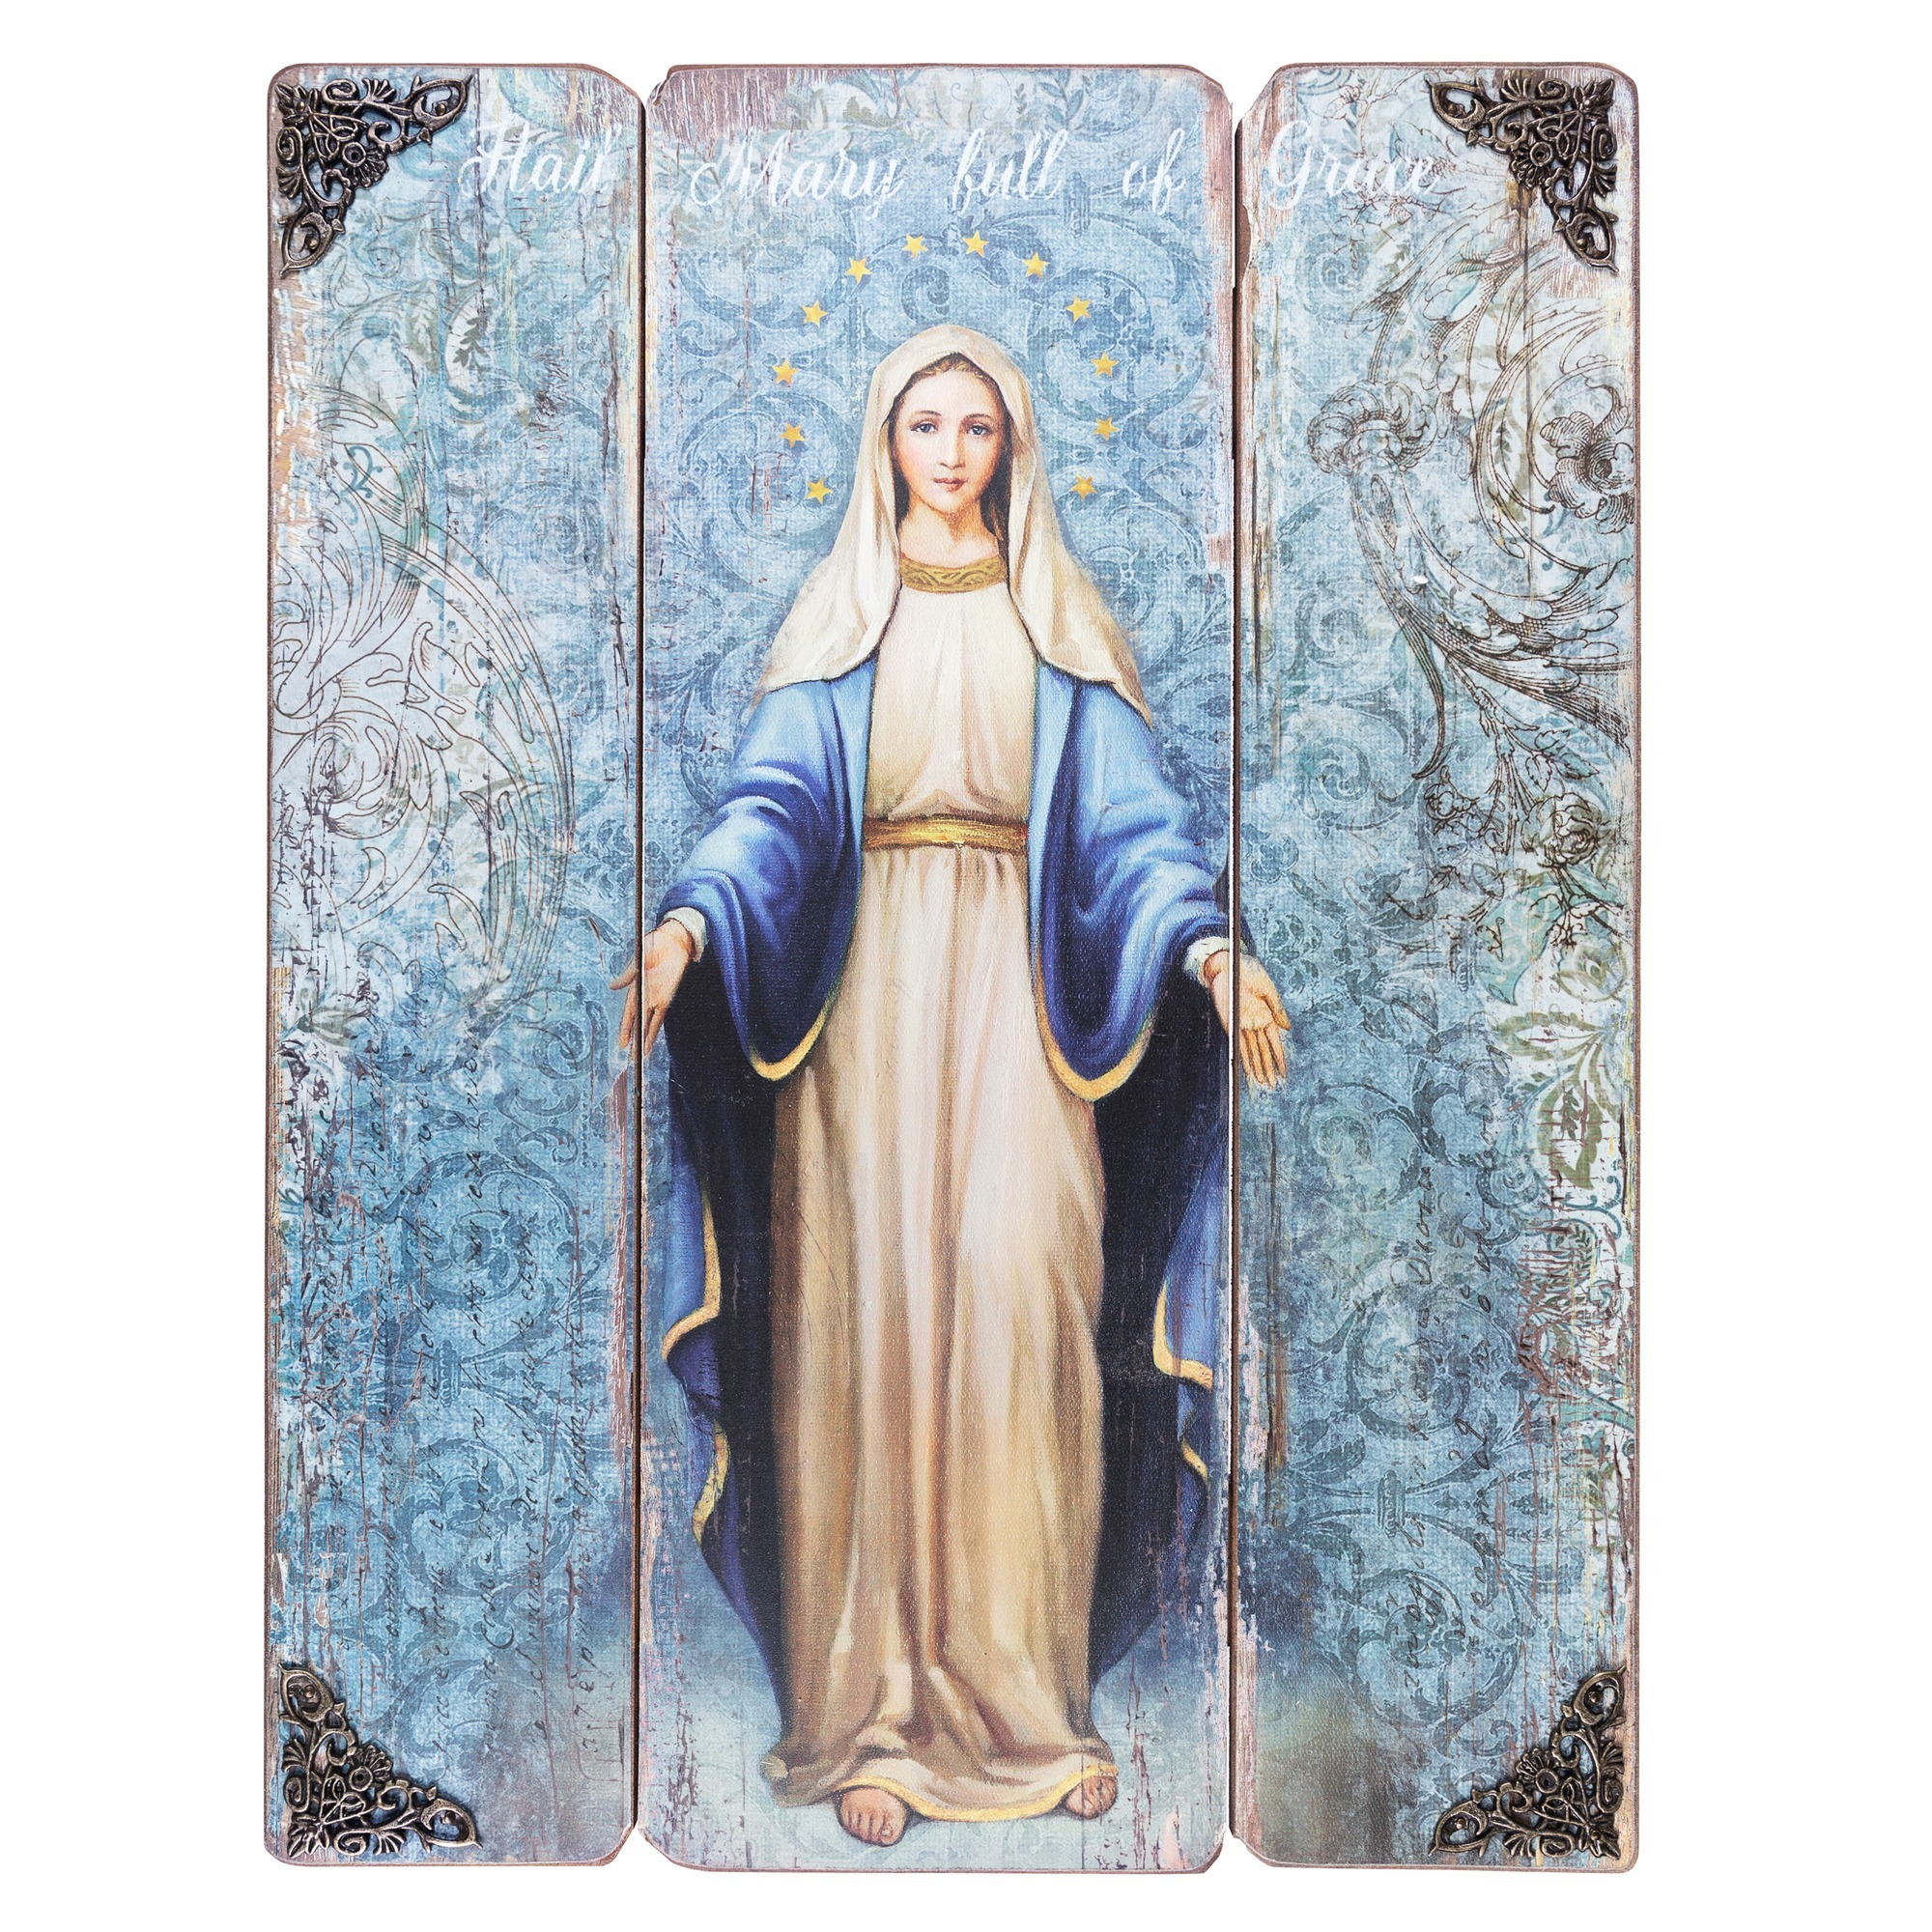 Our Lady of Grace Wall Painting